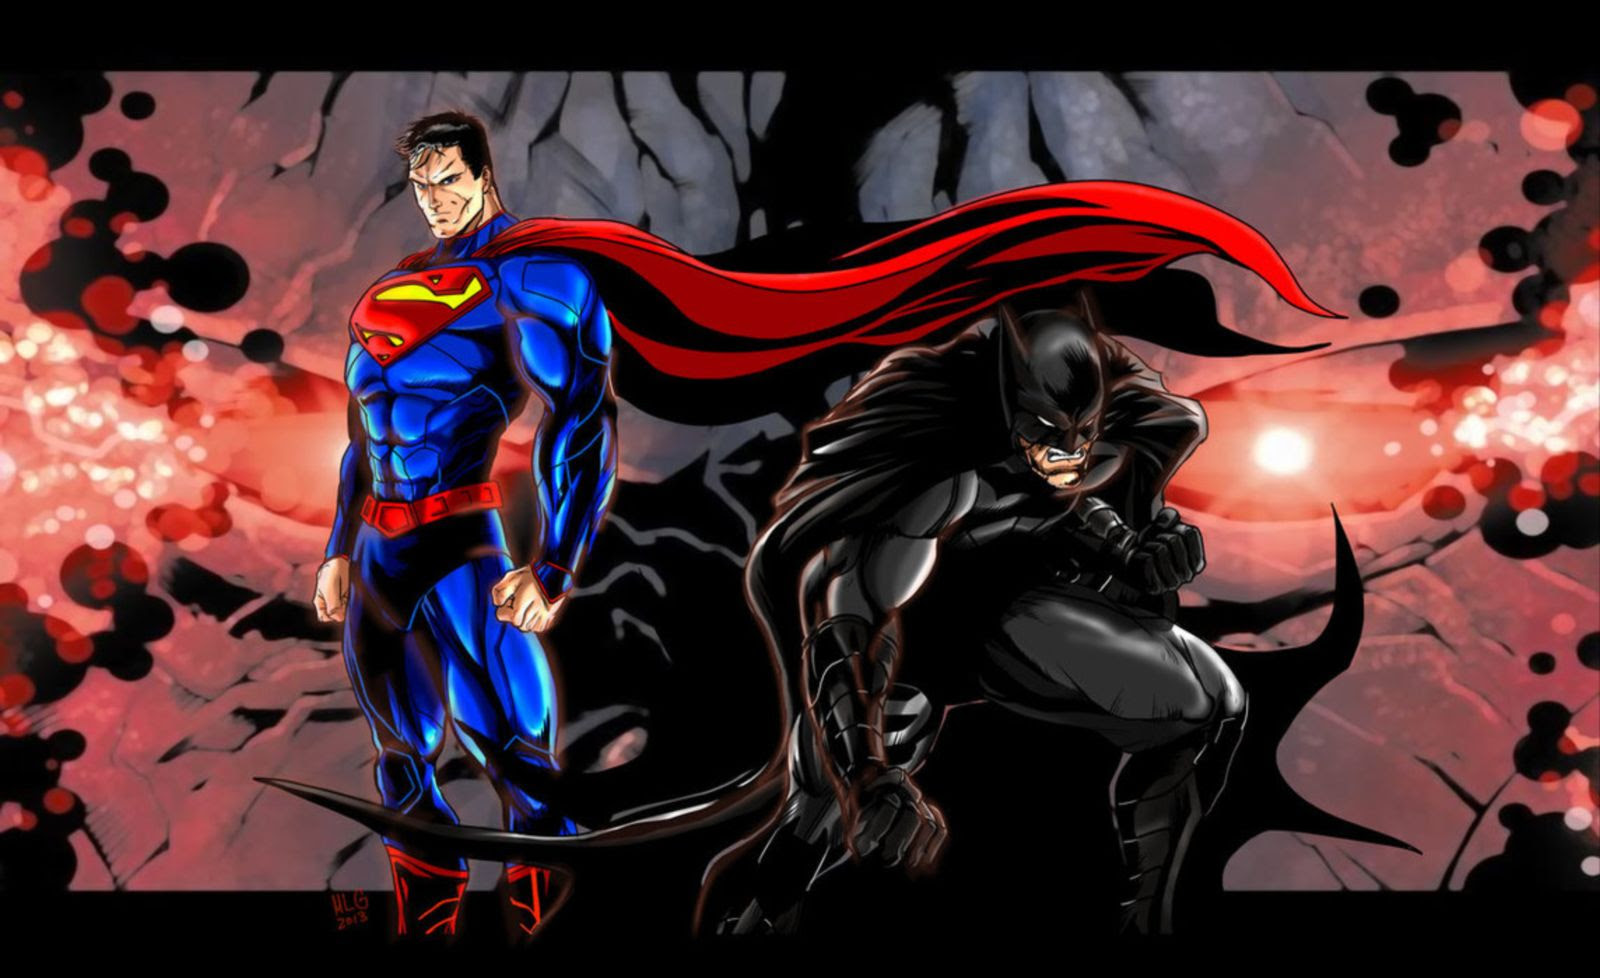 Batman Vs Superman 1080p Hd Wallpapers Onlyhd Wallpapers Only